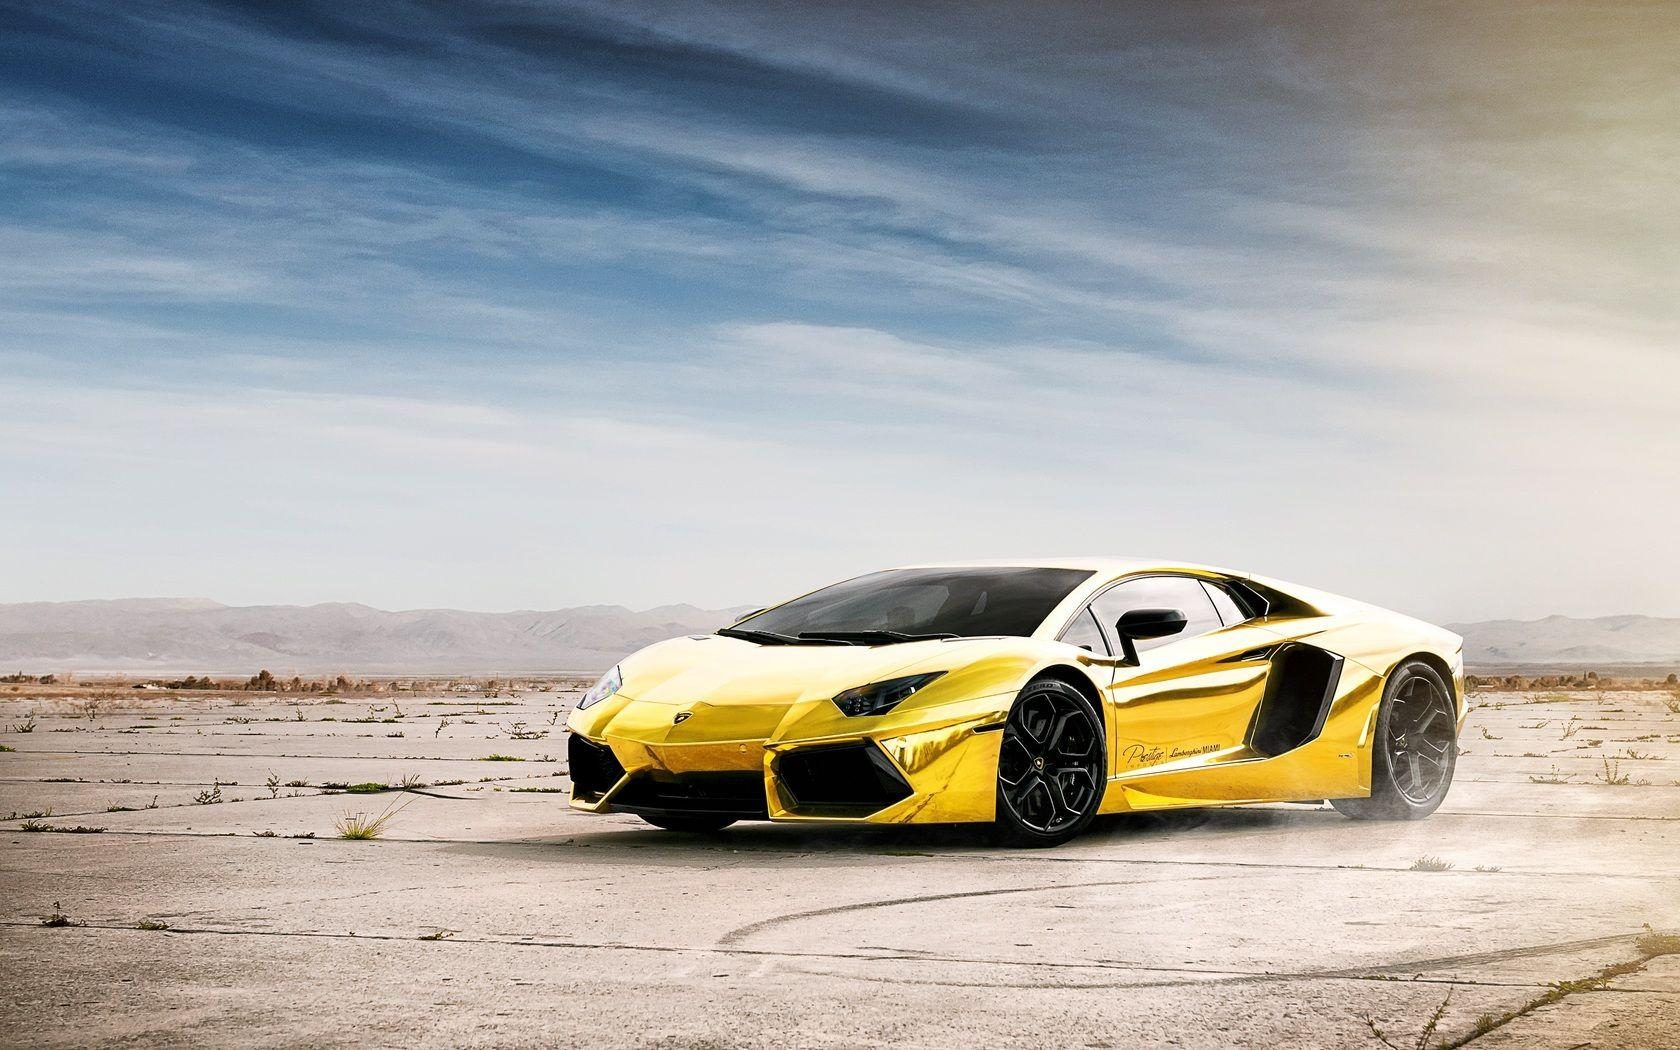 Gold Car Wallpapers: Gold Lamborghini Wallpapers